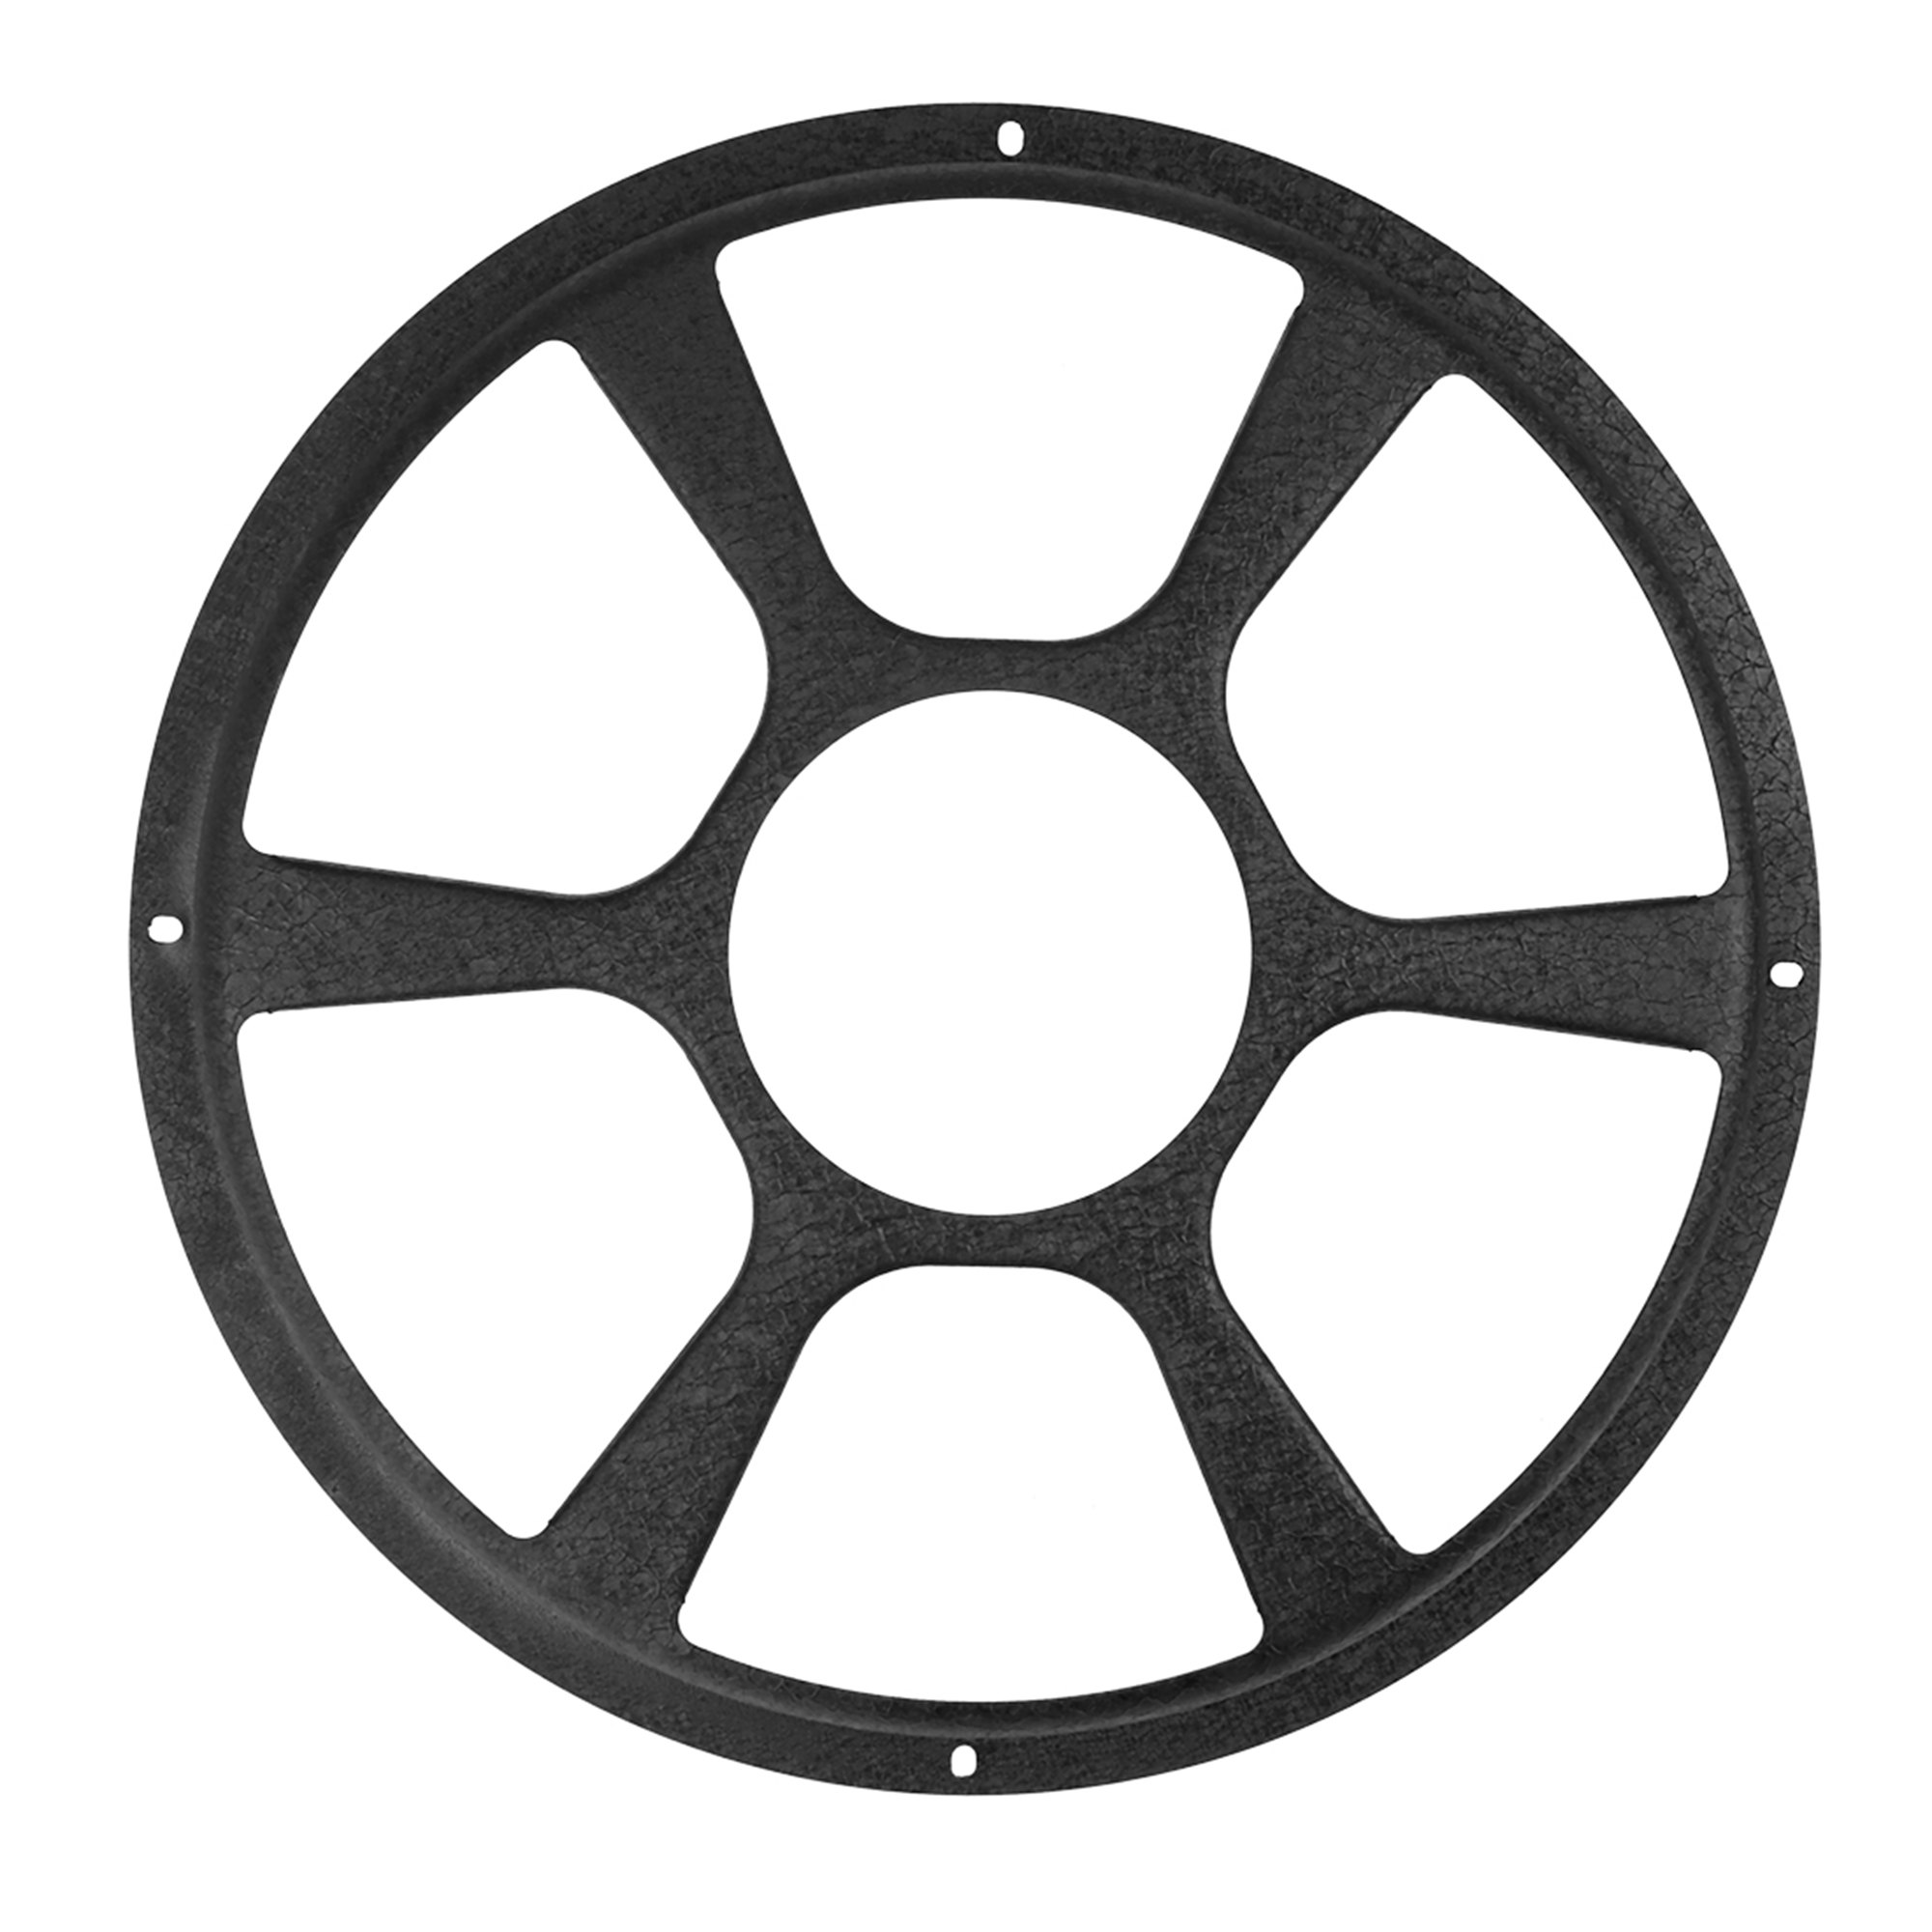 12 Inch Black Car Audio Speaker Cover Hollow Mesh Subwoofer Grill Horn Guard